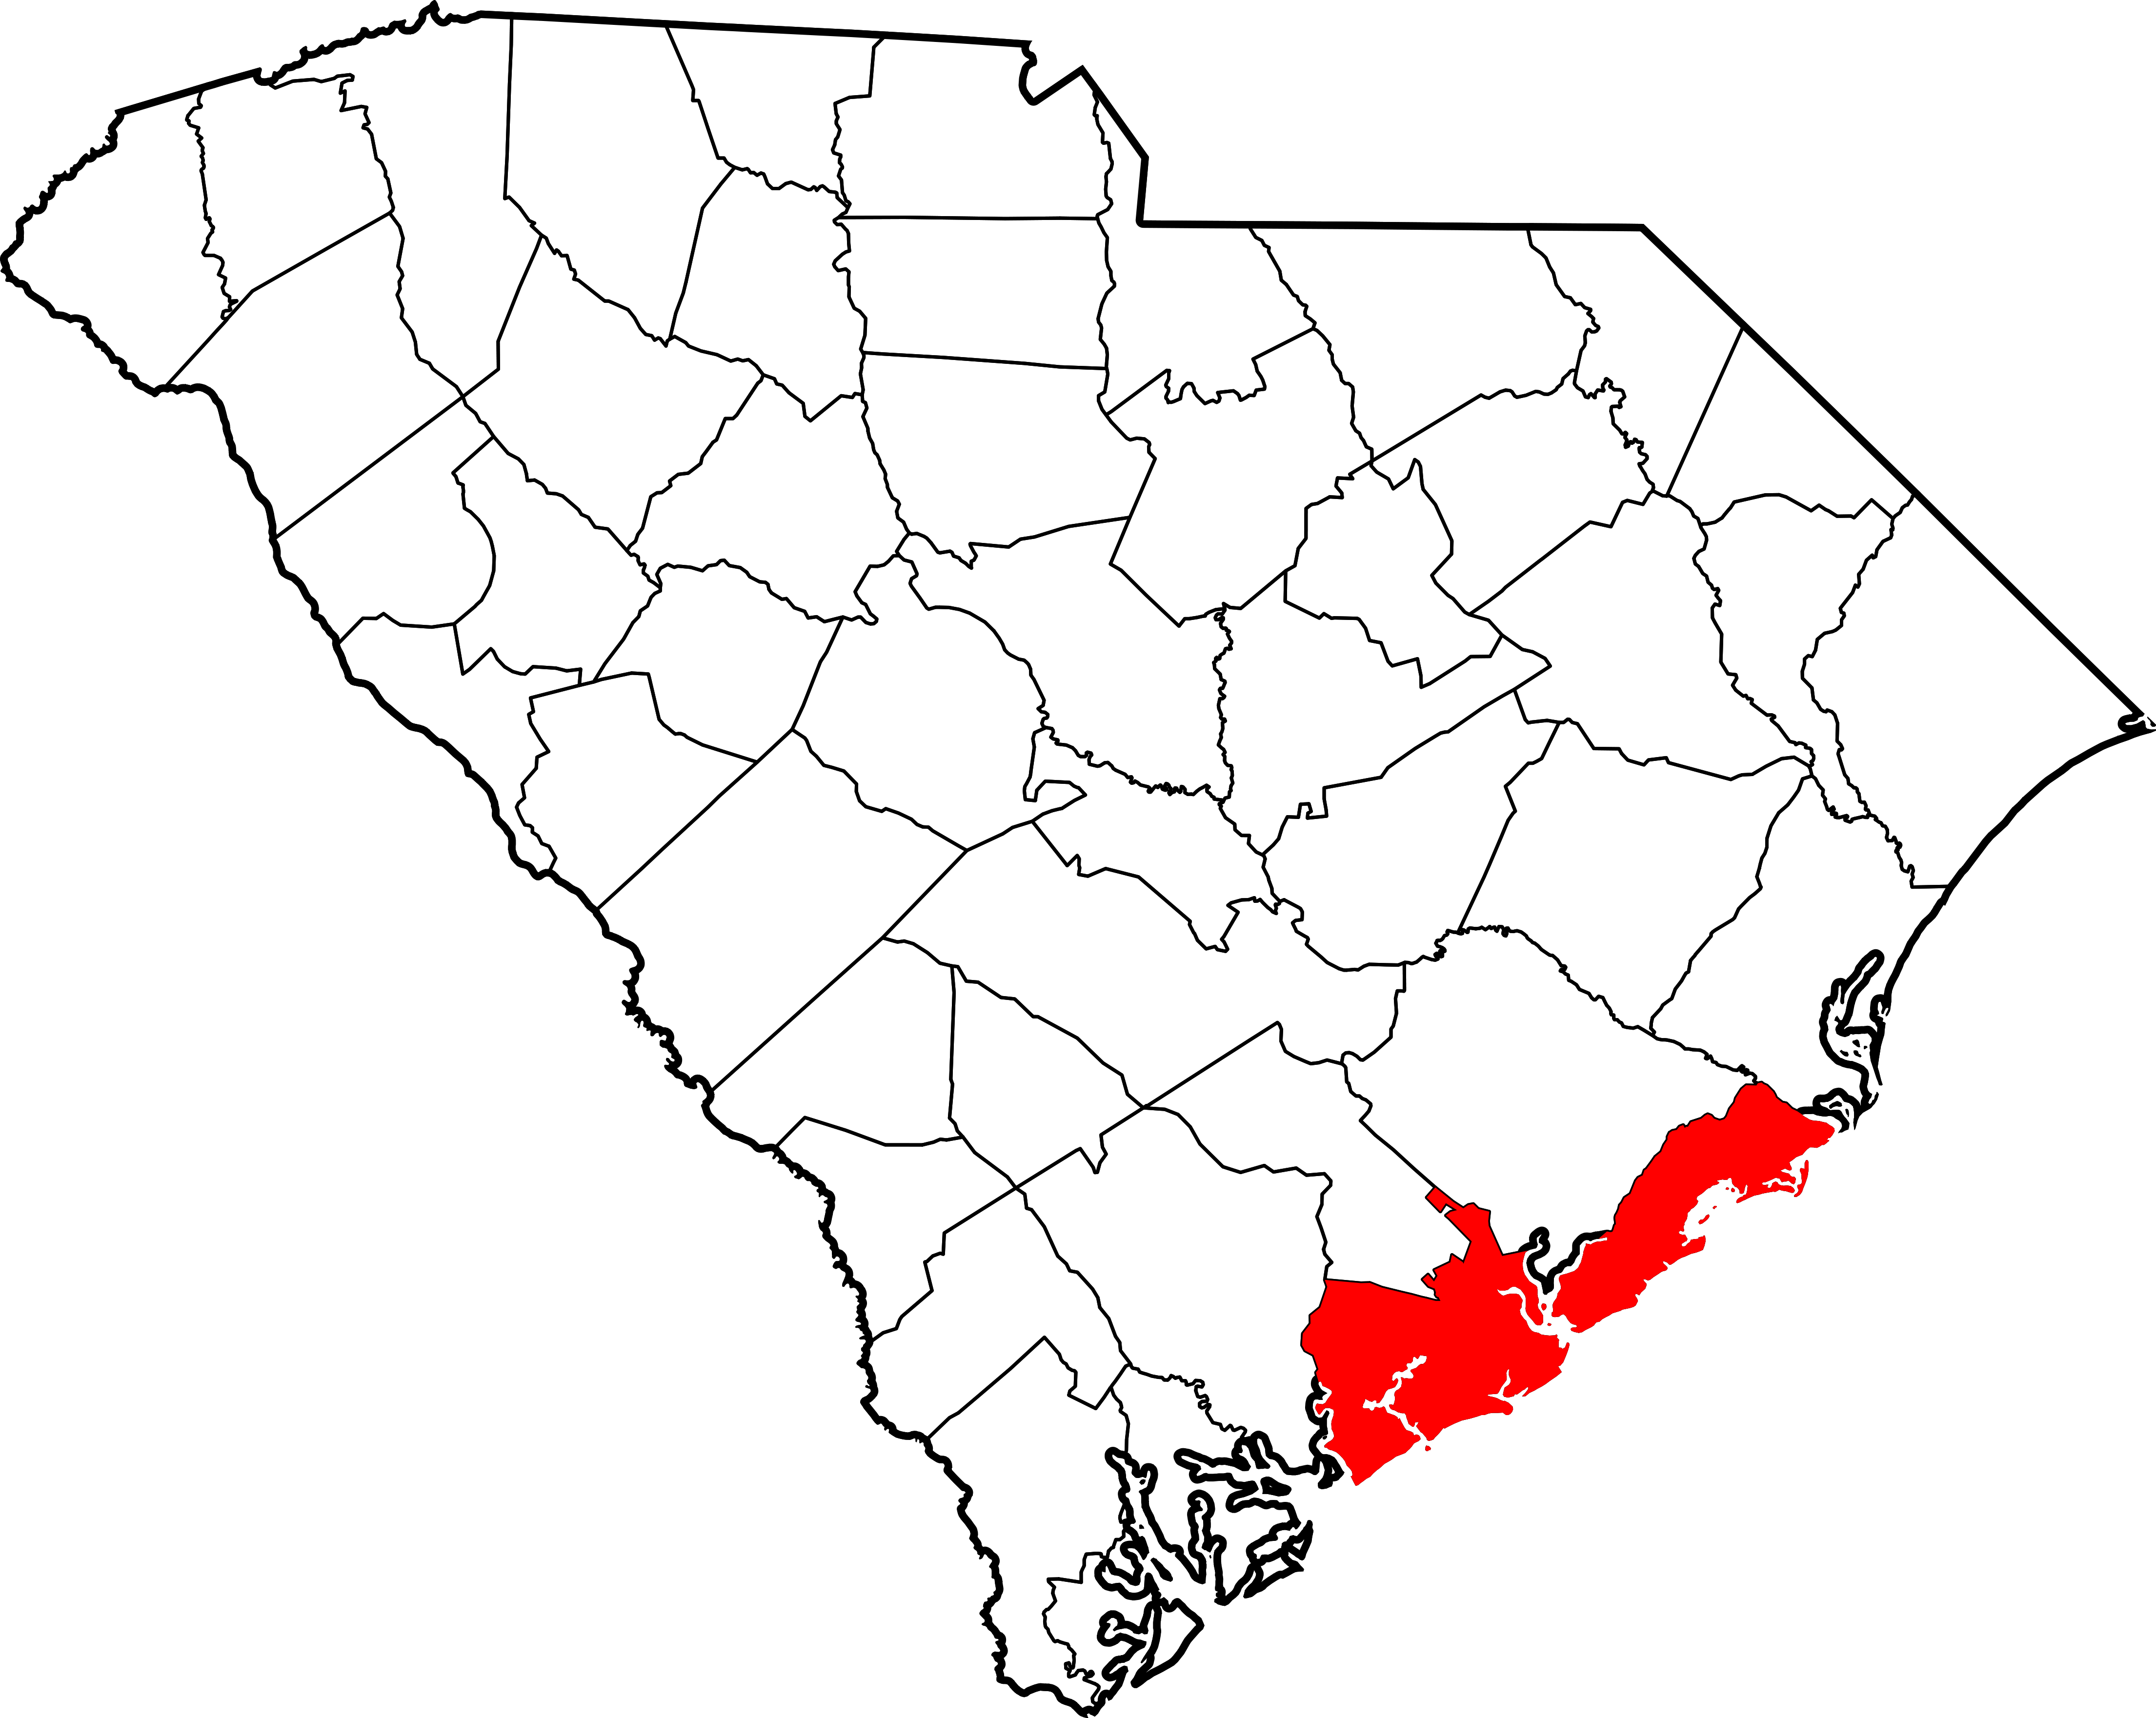 santee cooper map with Sullivan's 20island South 20carolina on Species Of Invasive Fish Walk On Land Climb Trees further Jamestown Bridge Santee River South Carolina as well Southcarolinac er as well 423760646161107357 together with Summer I 95 Road Trip South Carolina.